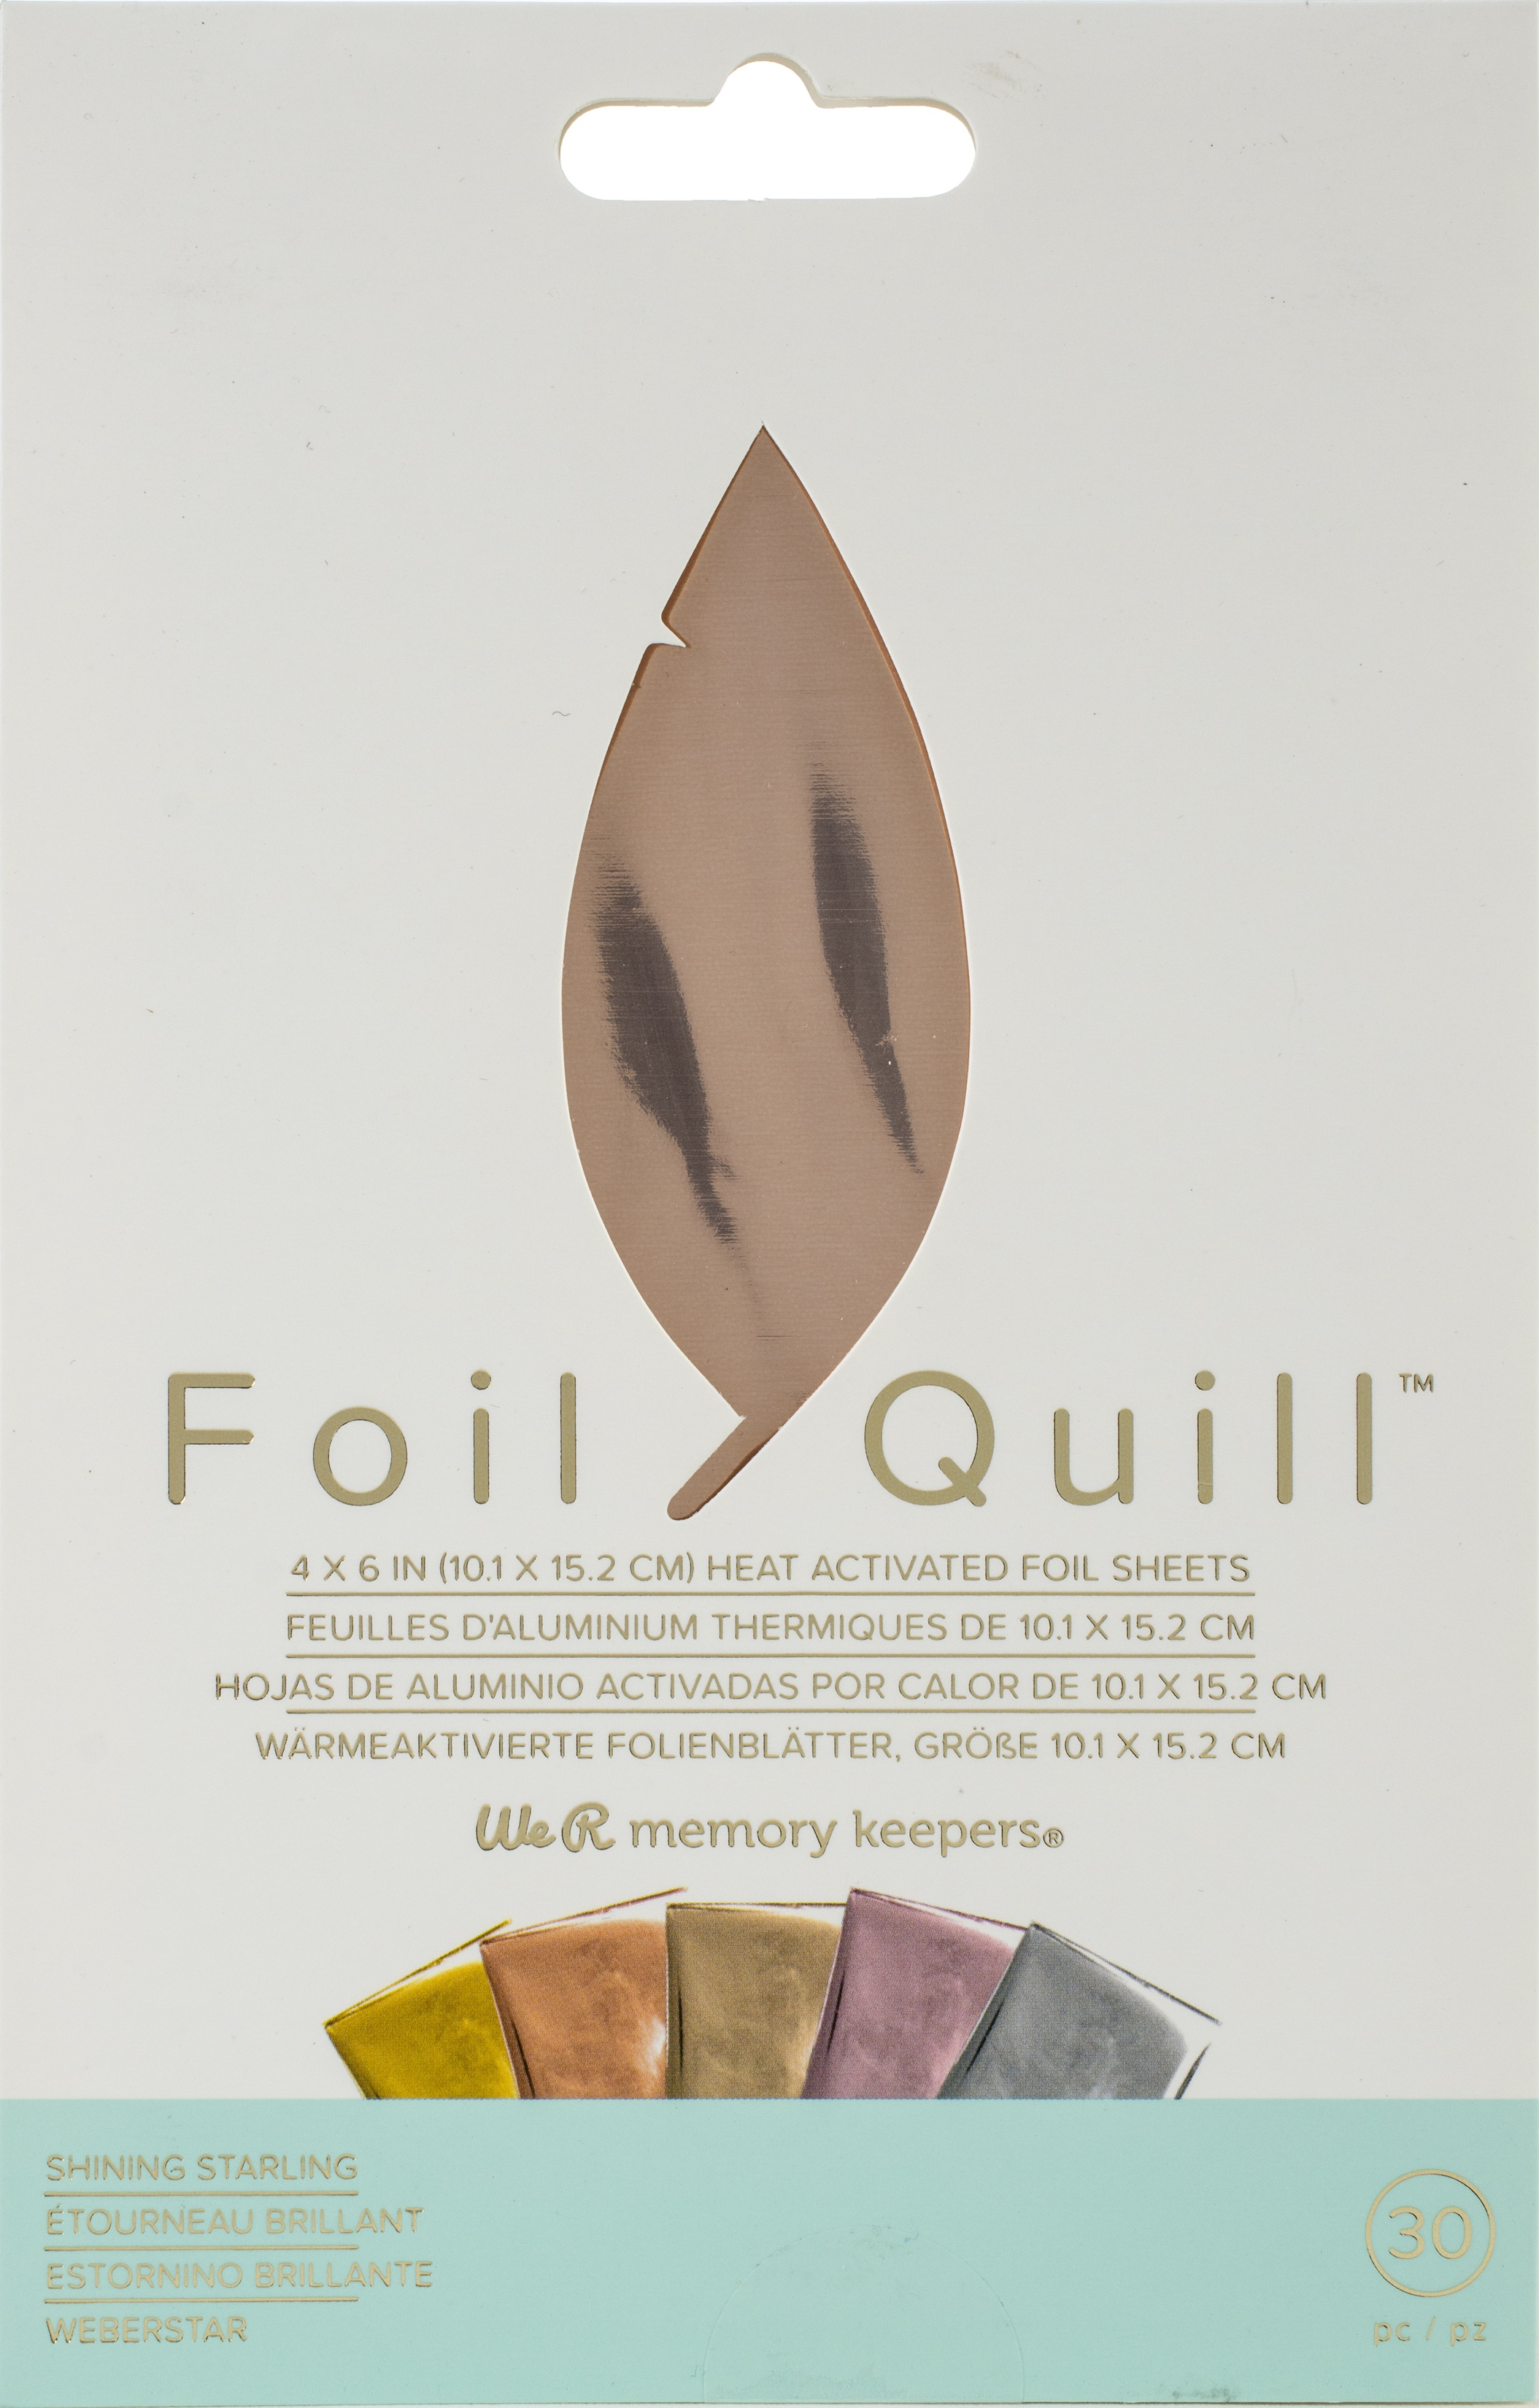 Foil Quill - 4x6 Foil Sheets - Shining Starling, 30/Pkg